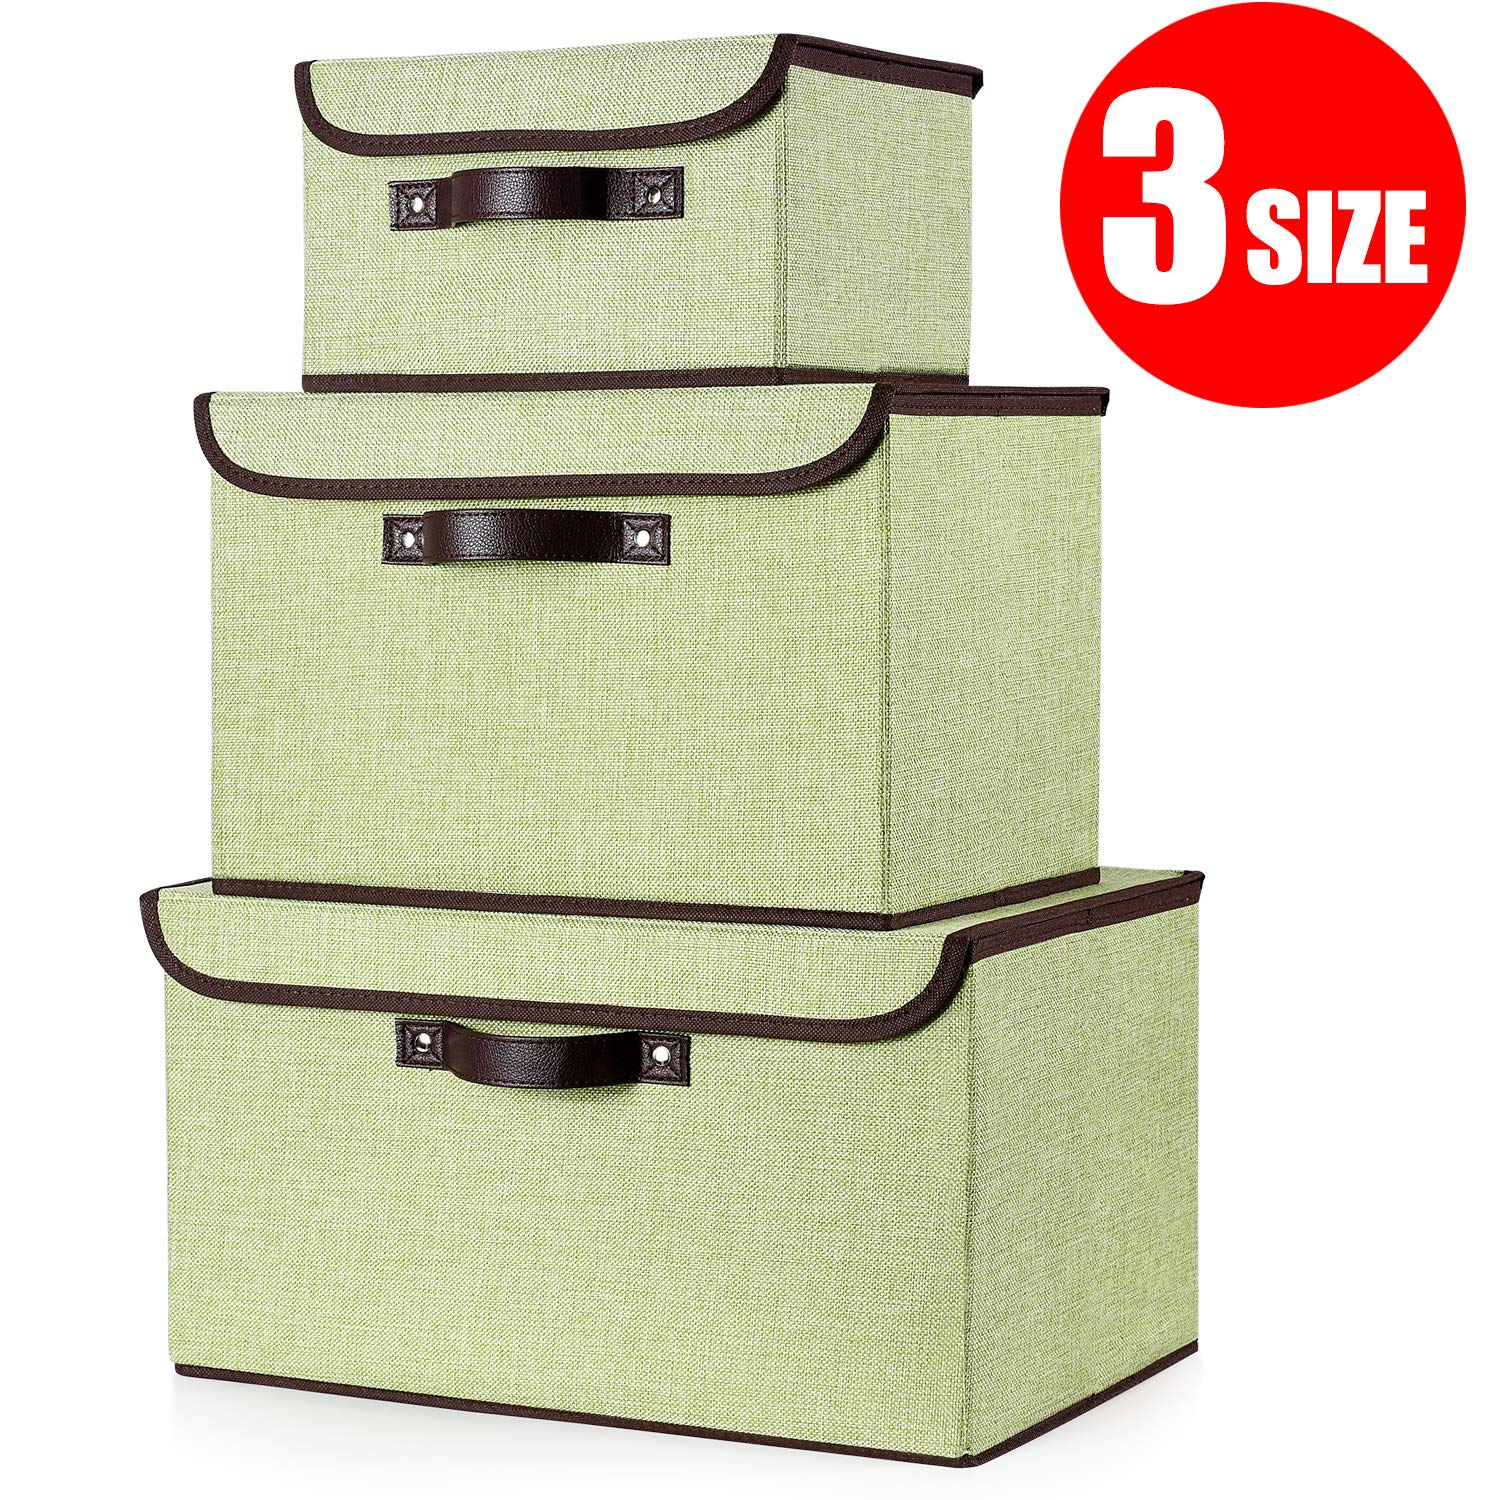 senbowe Foldable Storage Cubes [3-Size] Linen Fabric Foldable Storage Cubes Bin Box Containers Organizer Basket with Lid, Dual Handles, for Home, Office, Nursery, Closet, Bedroom, Living Room